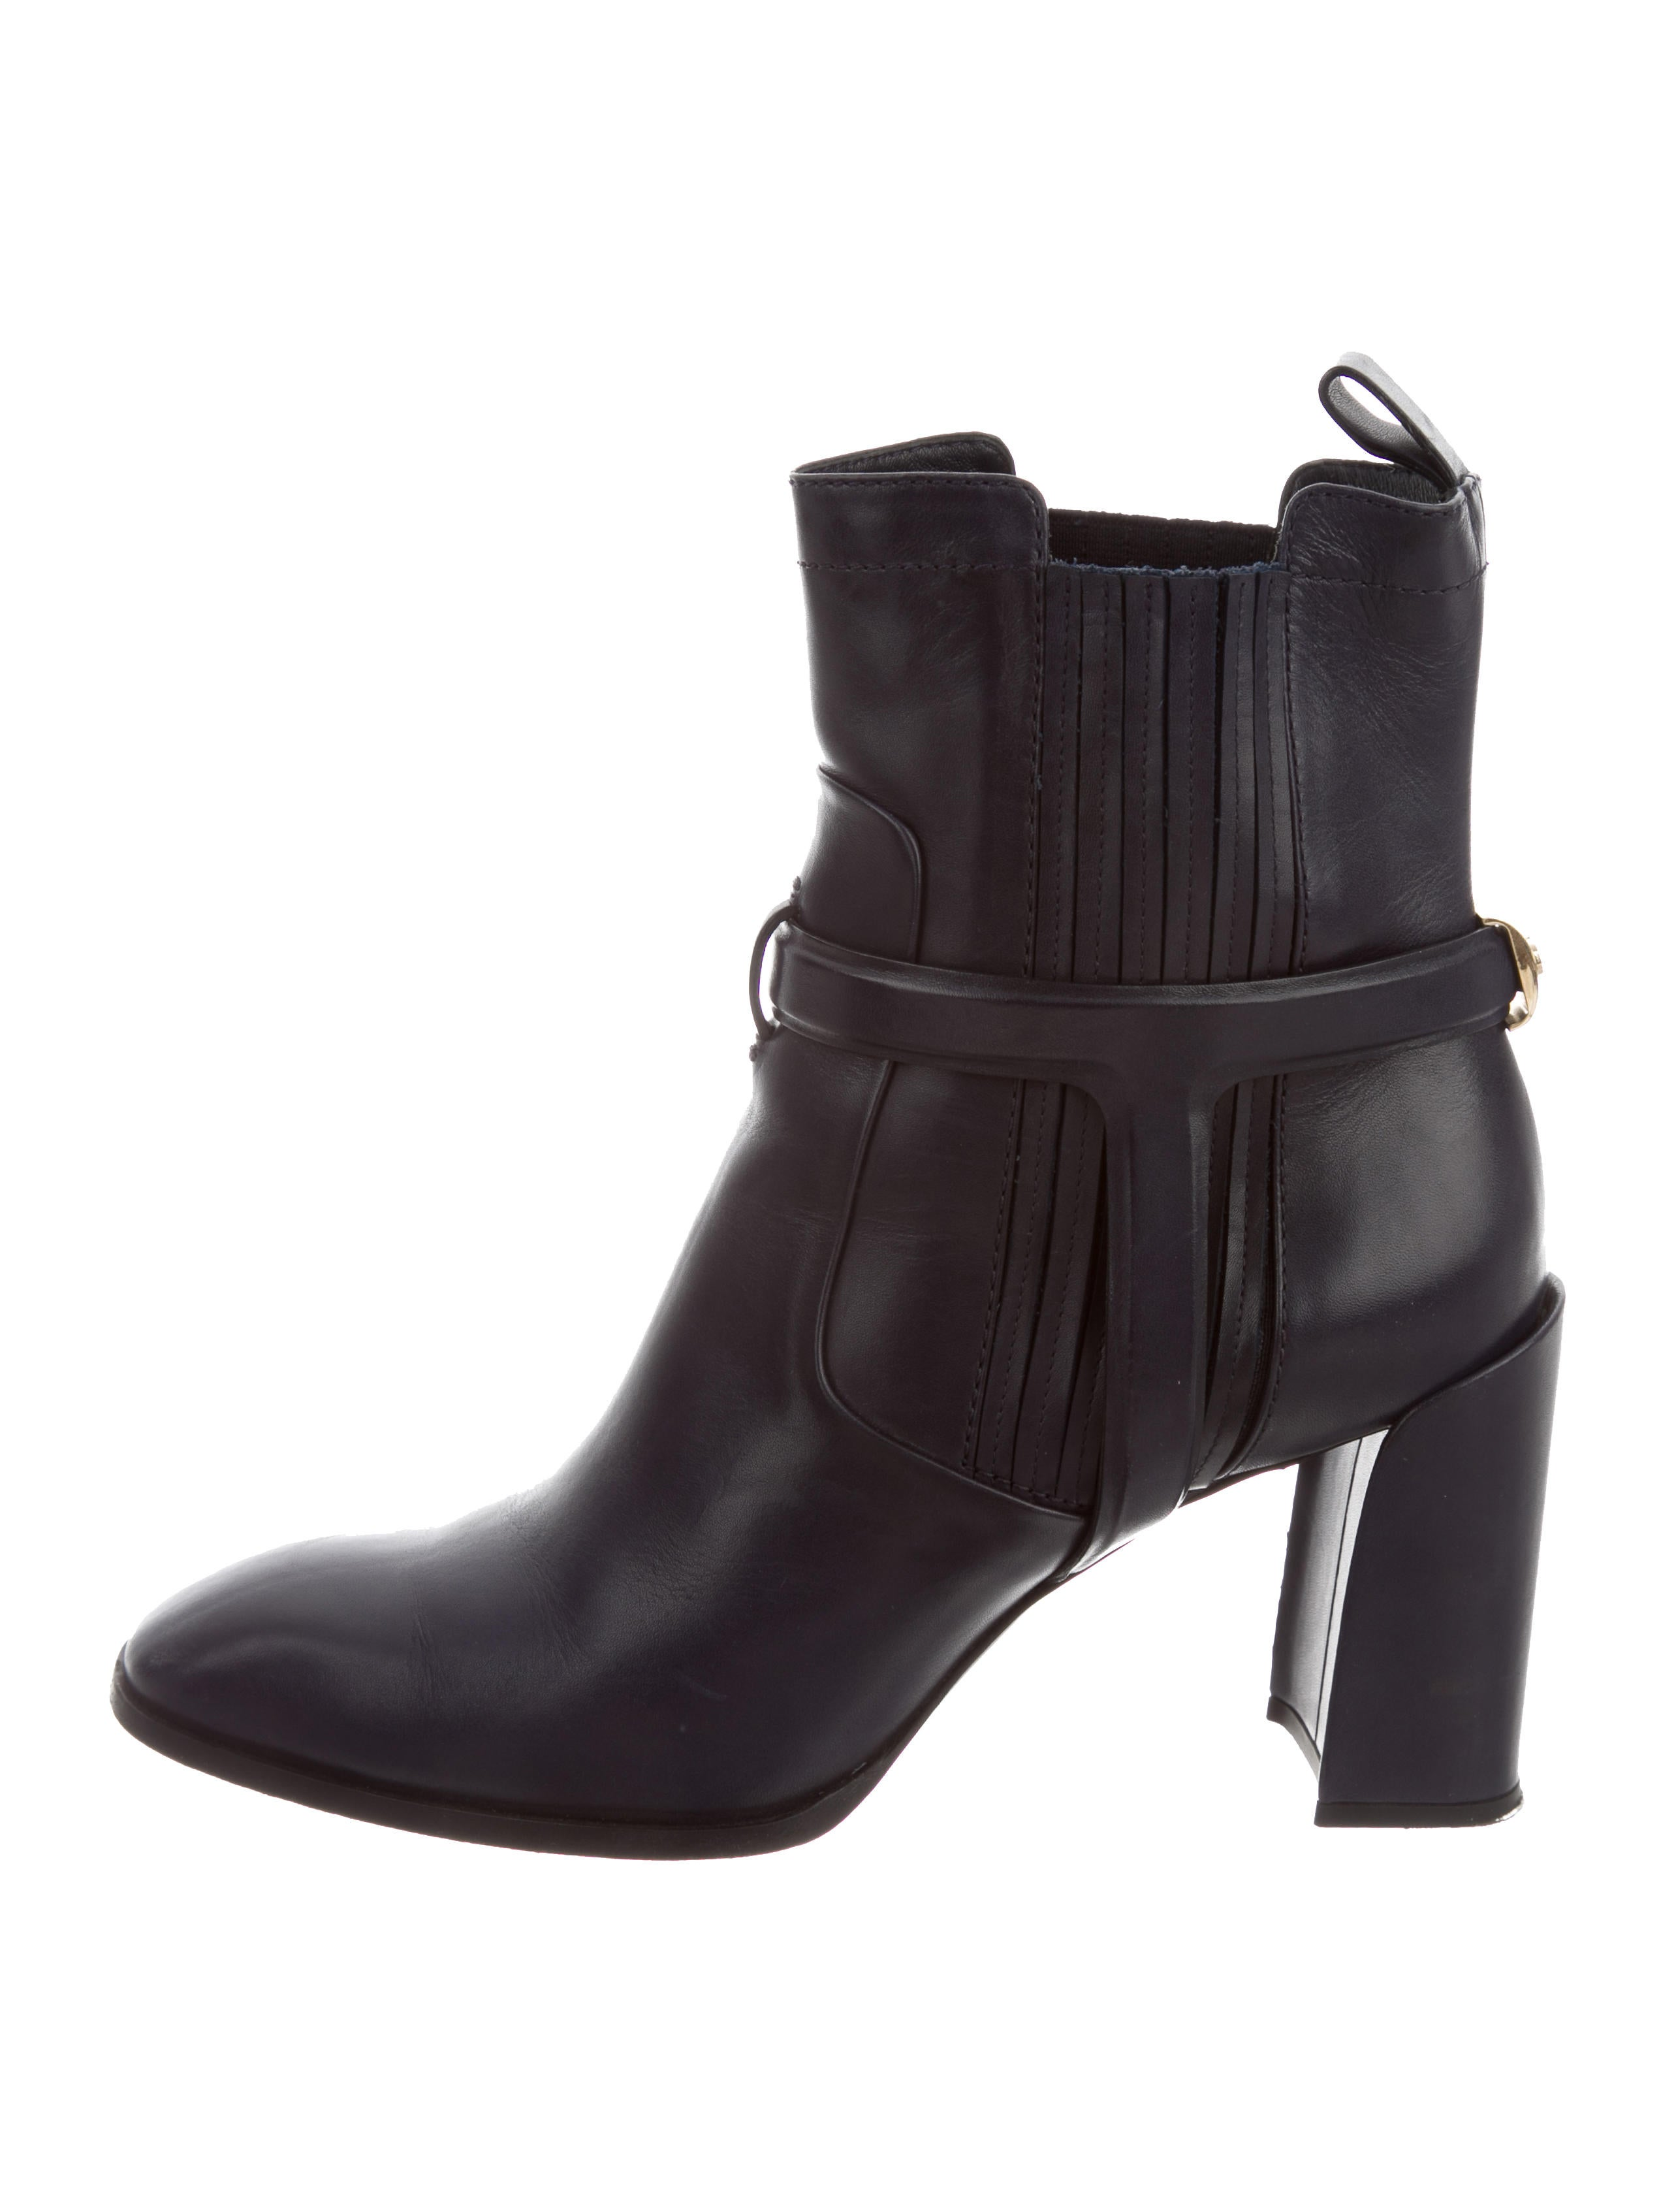 cheap very cheap Christian Dior Square-Toe Ankle Boots popular sale online visa payment online quality from china wholesale WxBHgbWqw